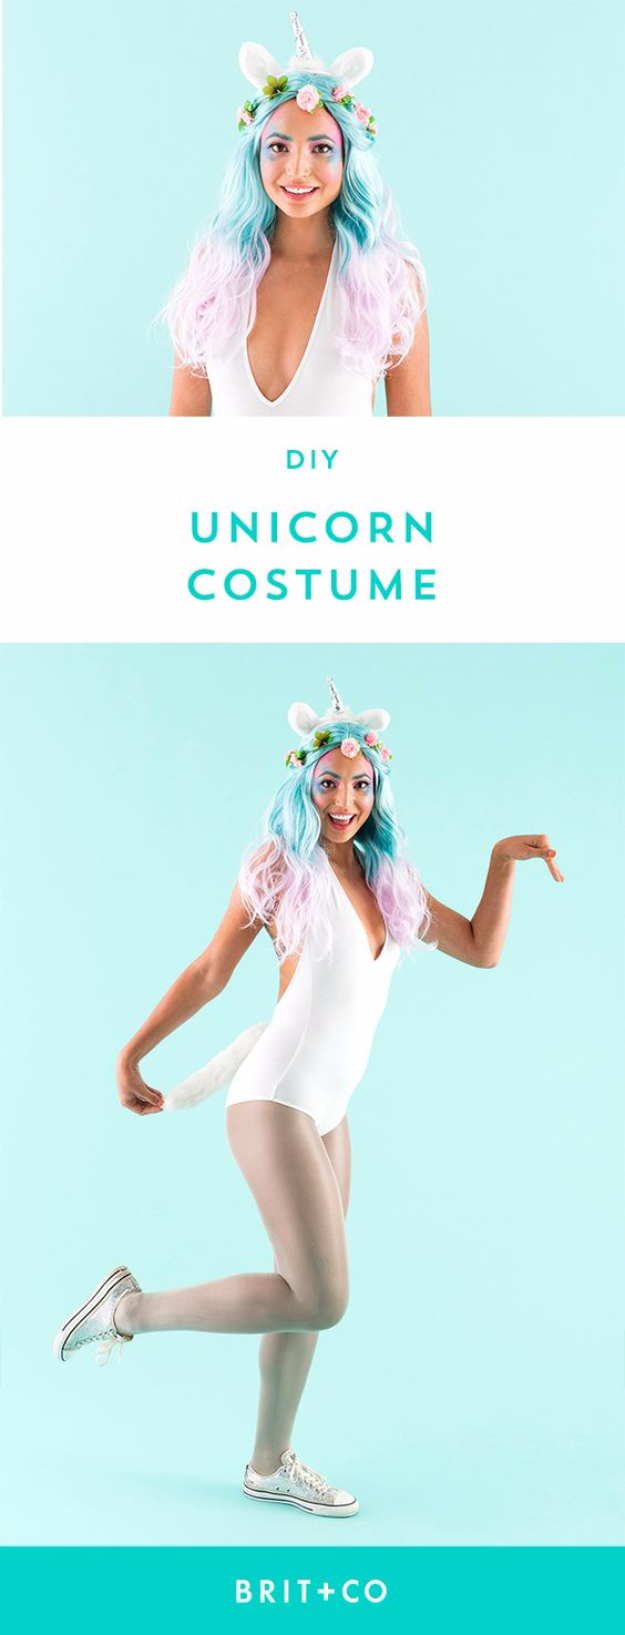 30 halloween costumes that will win the contest every time best diy halloween costume ideas diy unicorn costume do it yourself costumes for women solutioingenieria Image collections